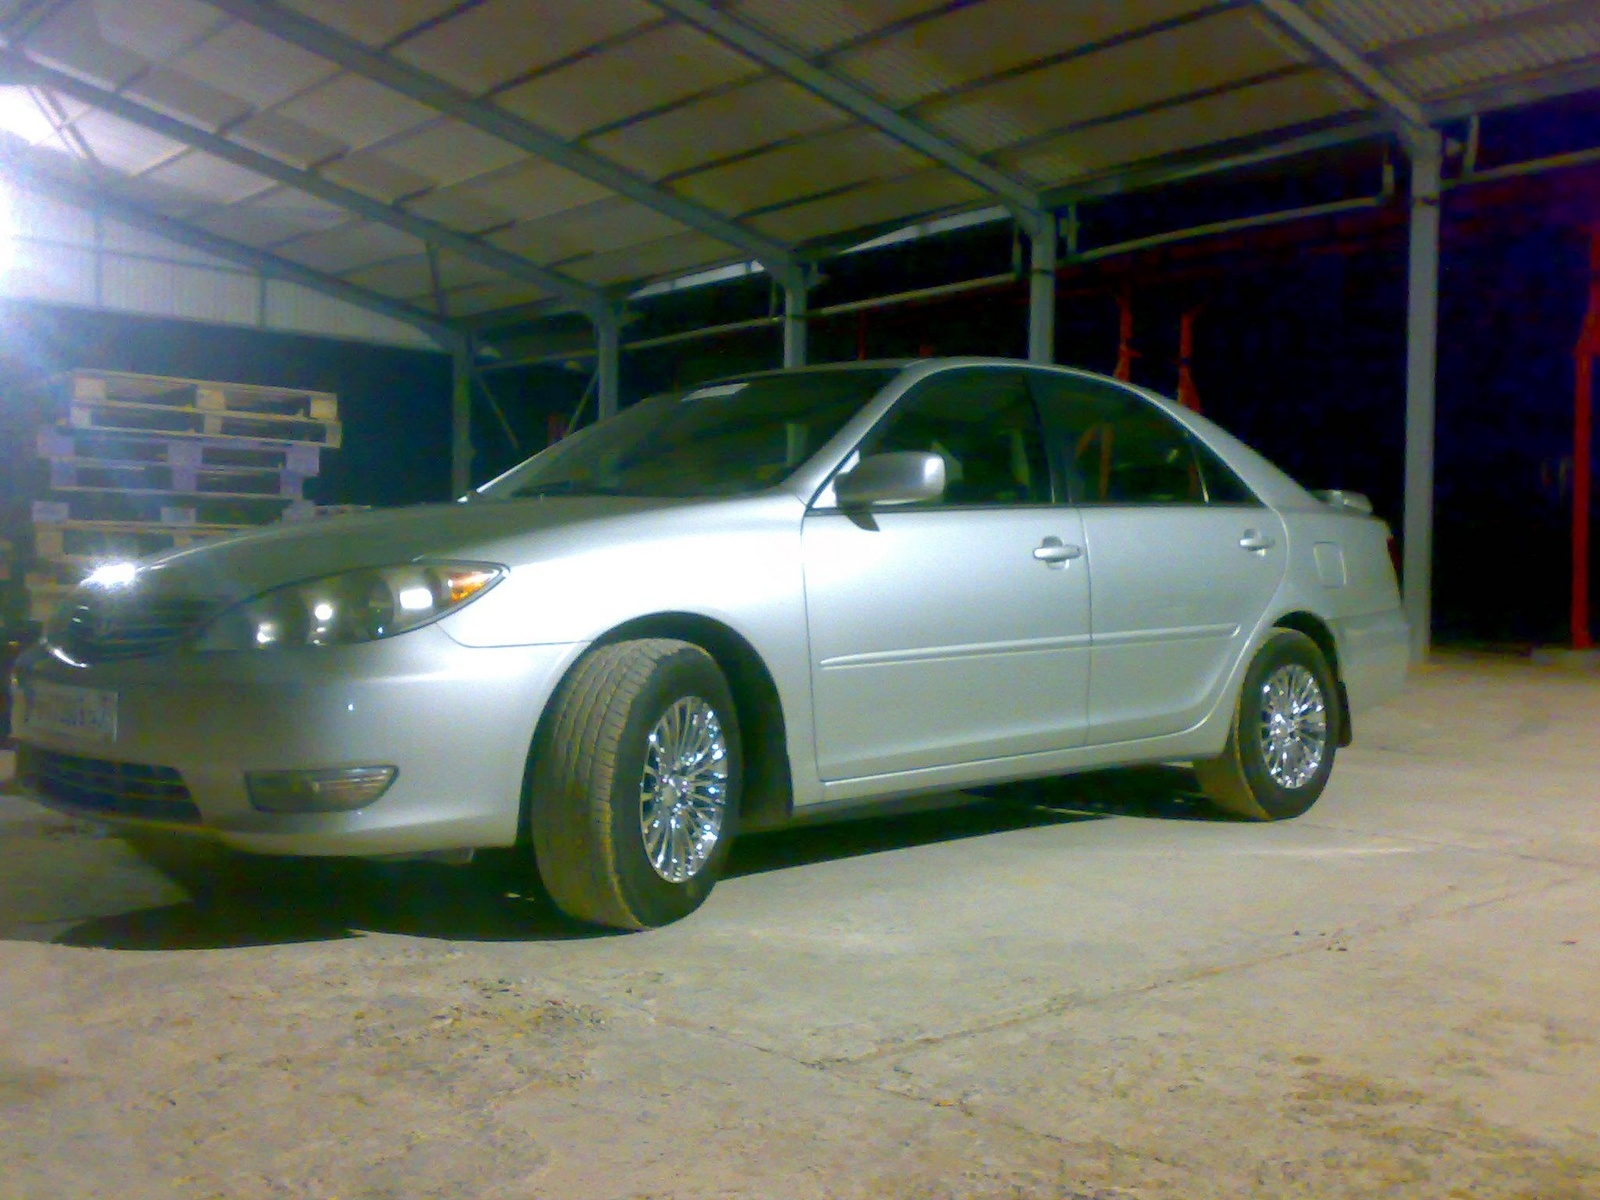 toyota camry questions i have toyota camry 2 4,2005 le and i havei have toyota camry 2 4,2005 le and i have a problem with the oxygen sensor or air mass sensor, could this be the reason for bad gear shifting,cause i have